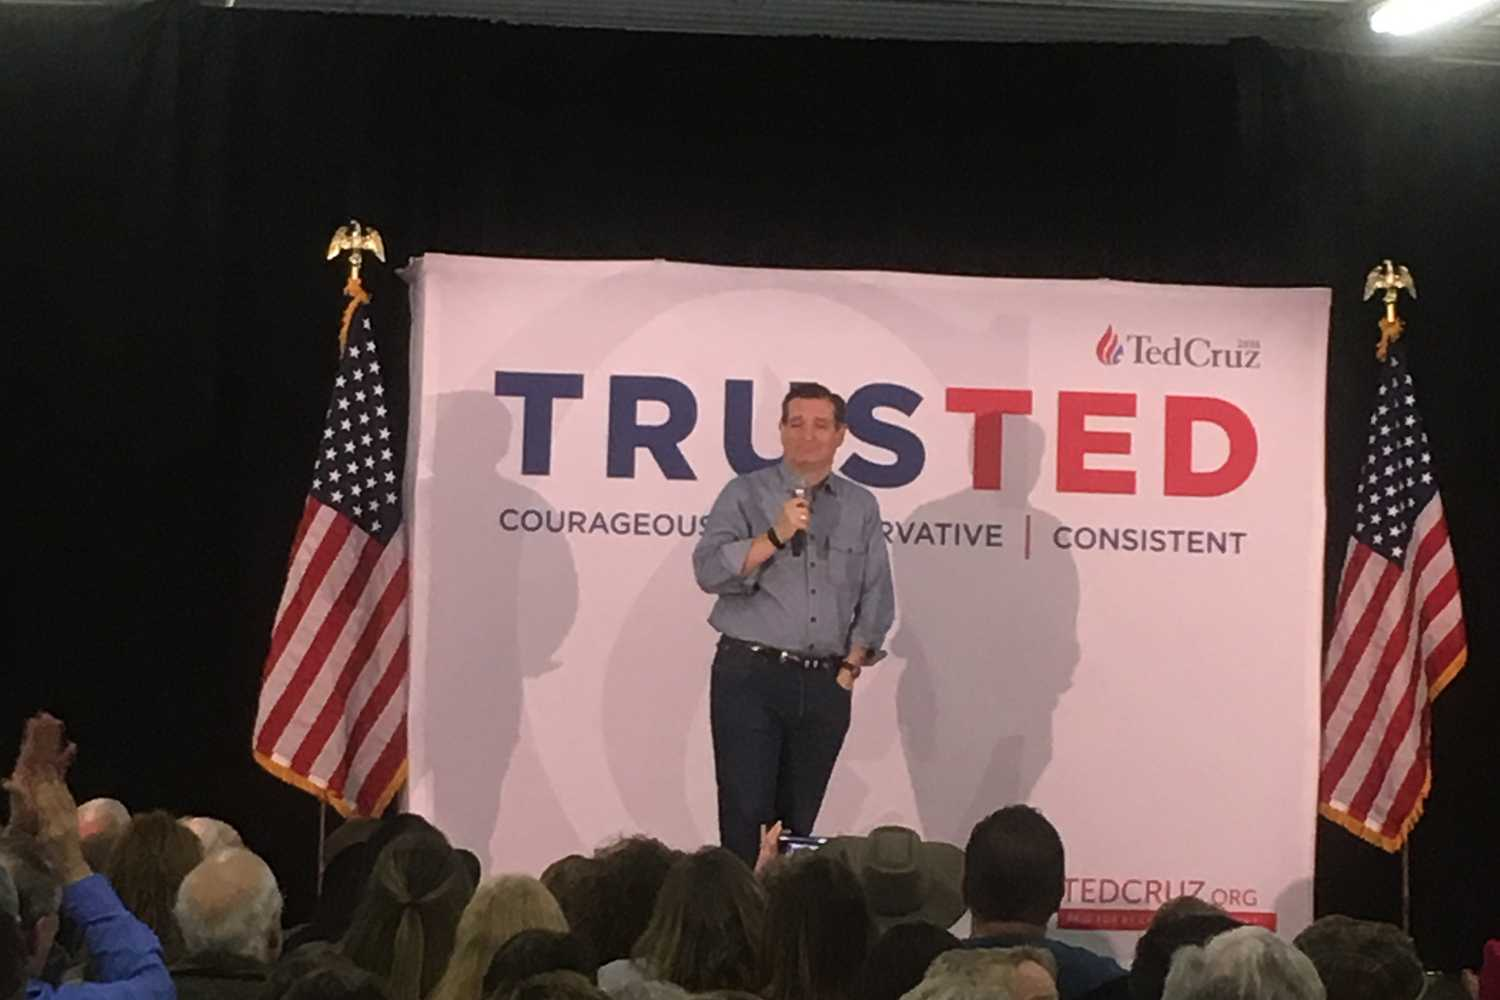 Ted Cruz speaks at the Johnson County Fair Grounds.